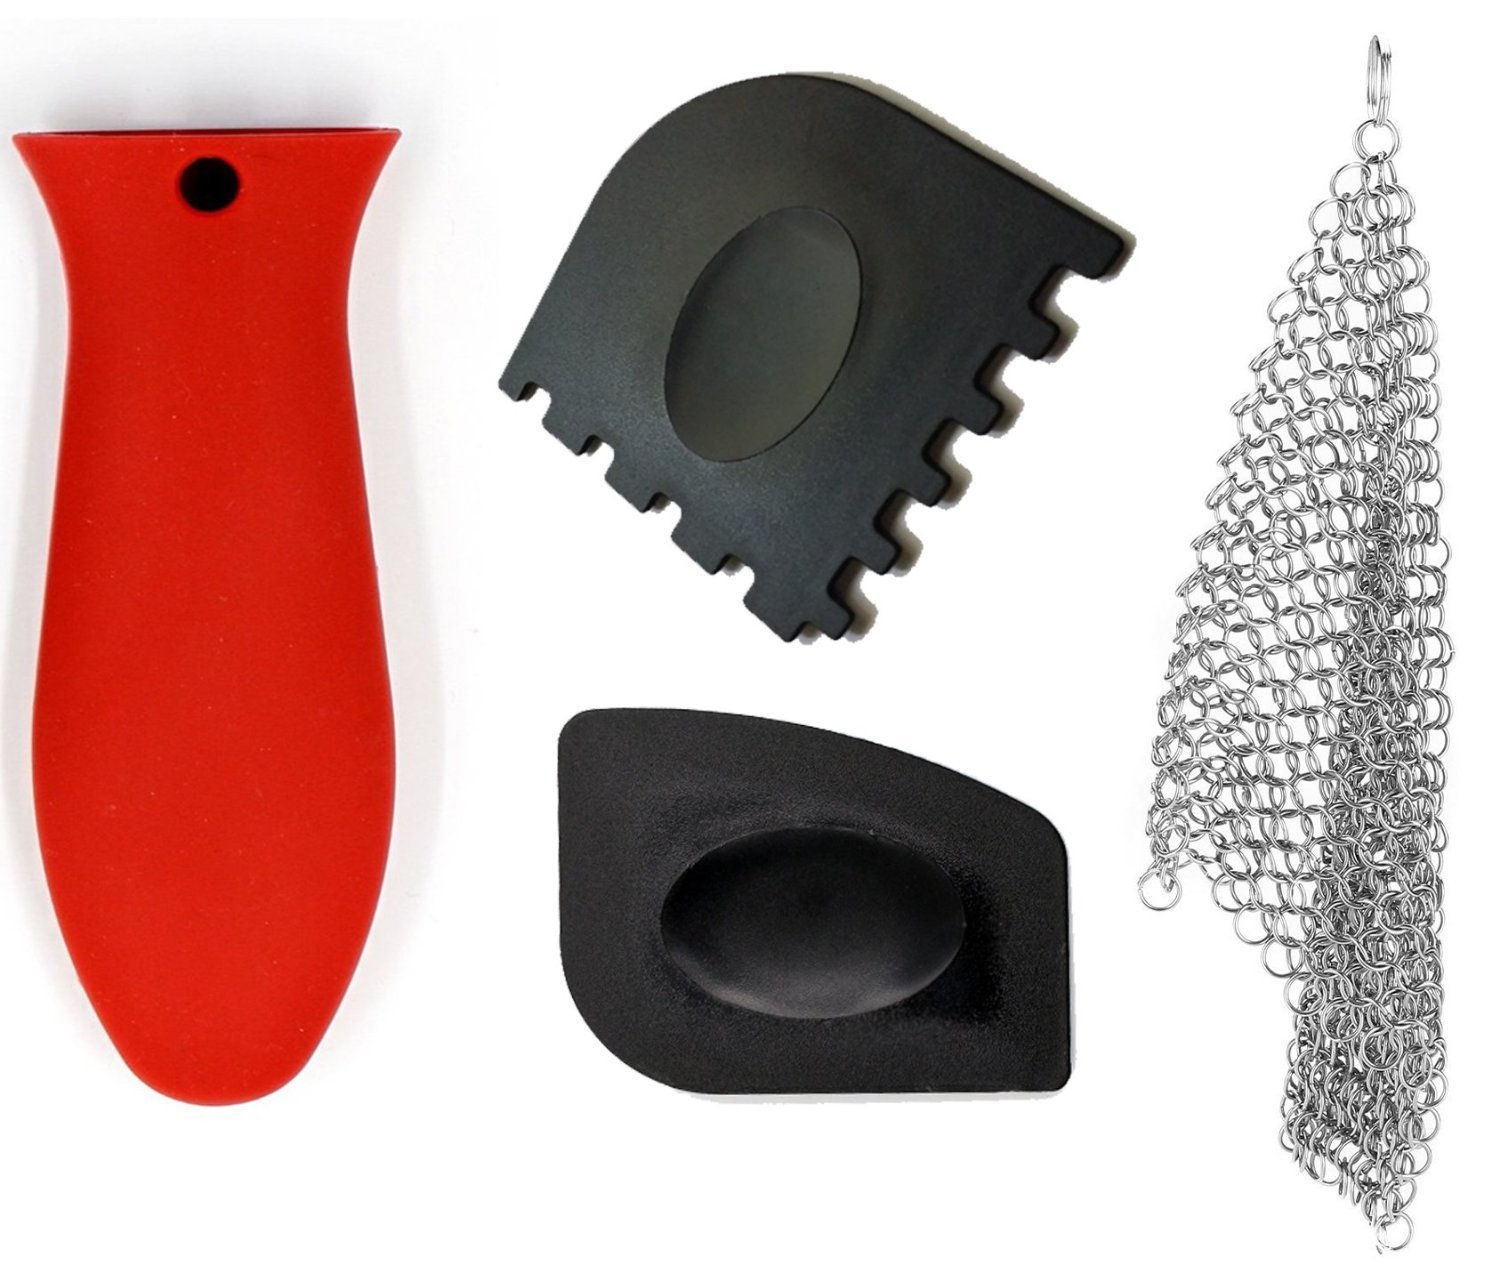 Sir Scrubs A Lot Premium Cast Iron Cleaner Stainless Steel Chain Mail Skillet Scrubber & Accessories